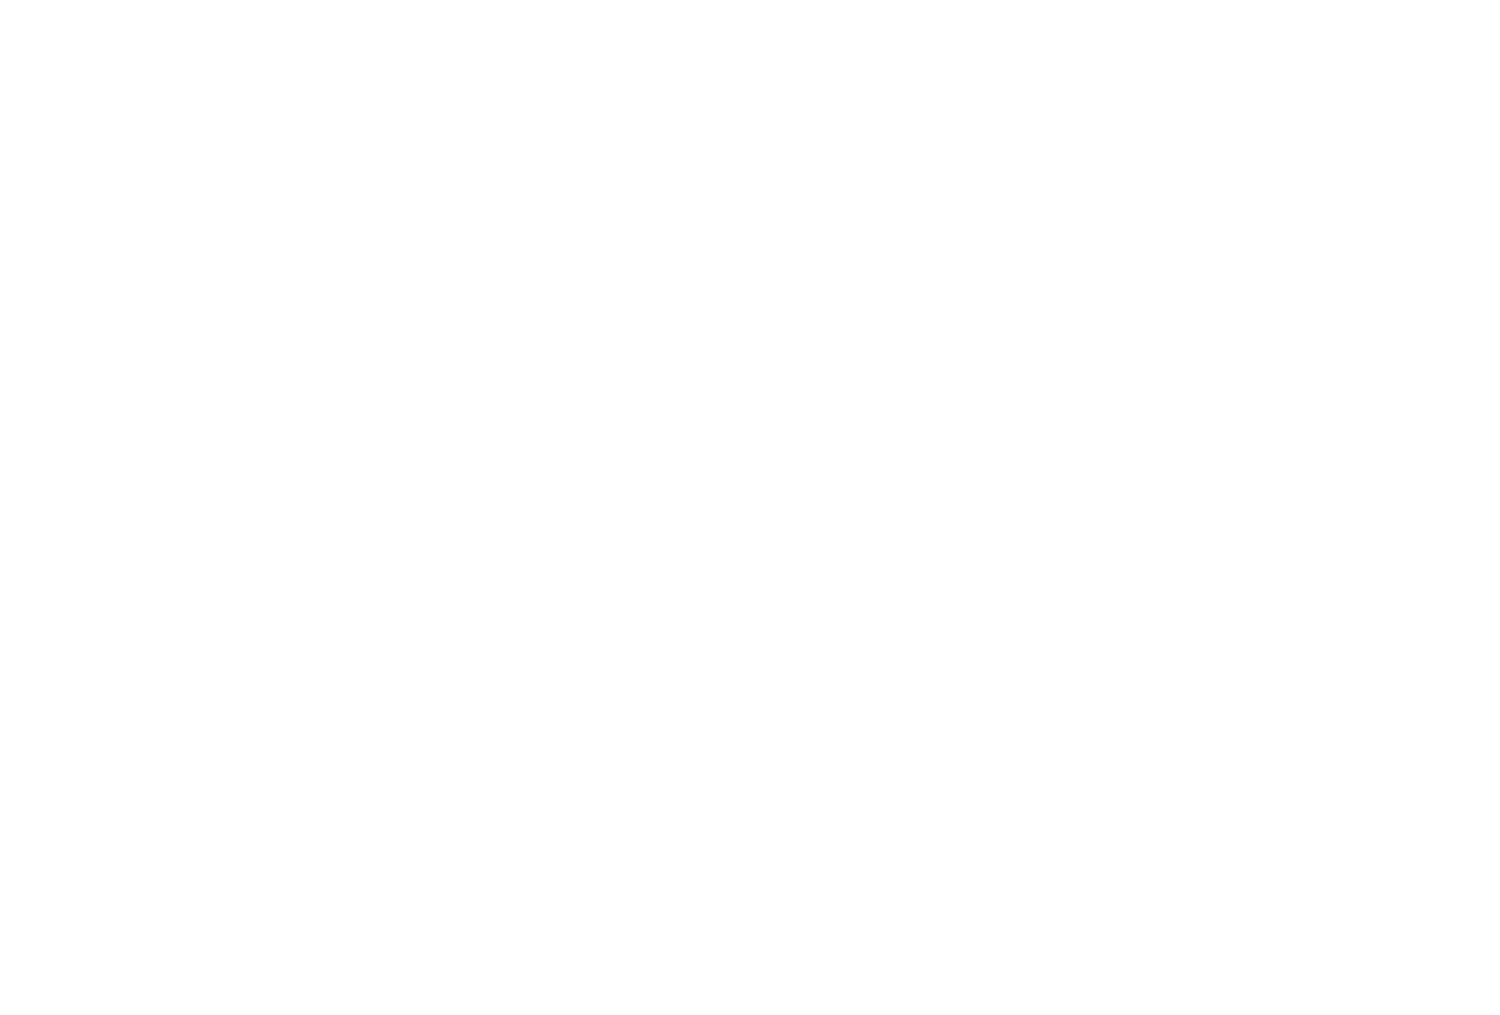 JERRY BEI GALLERY